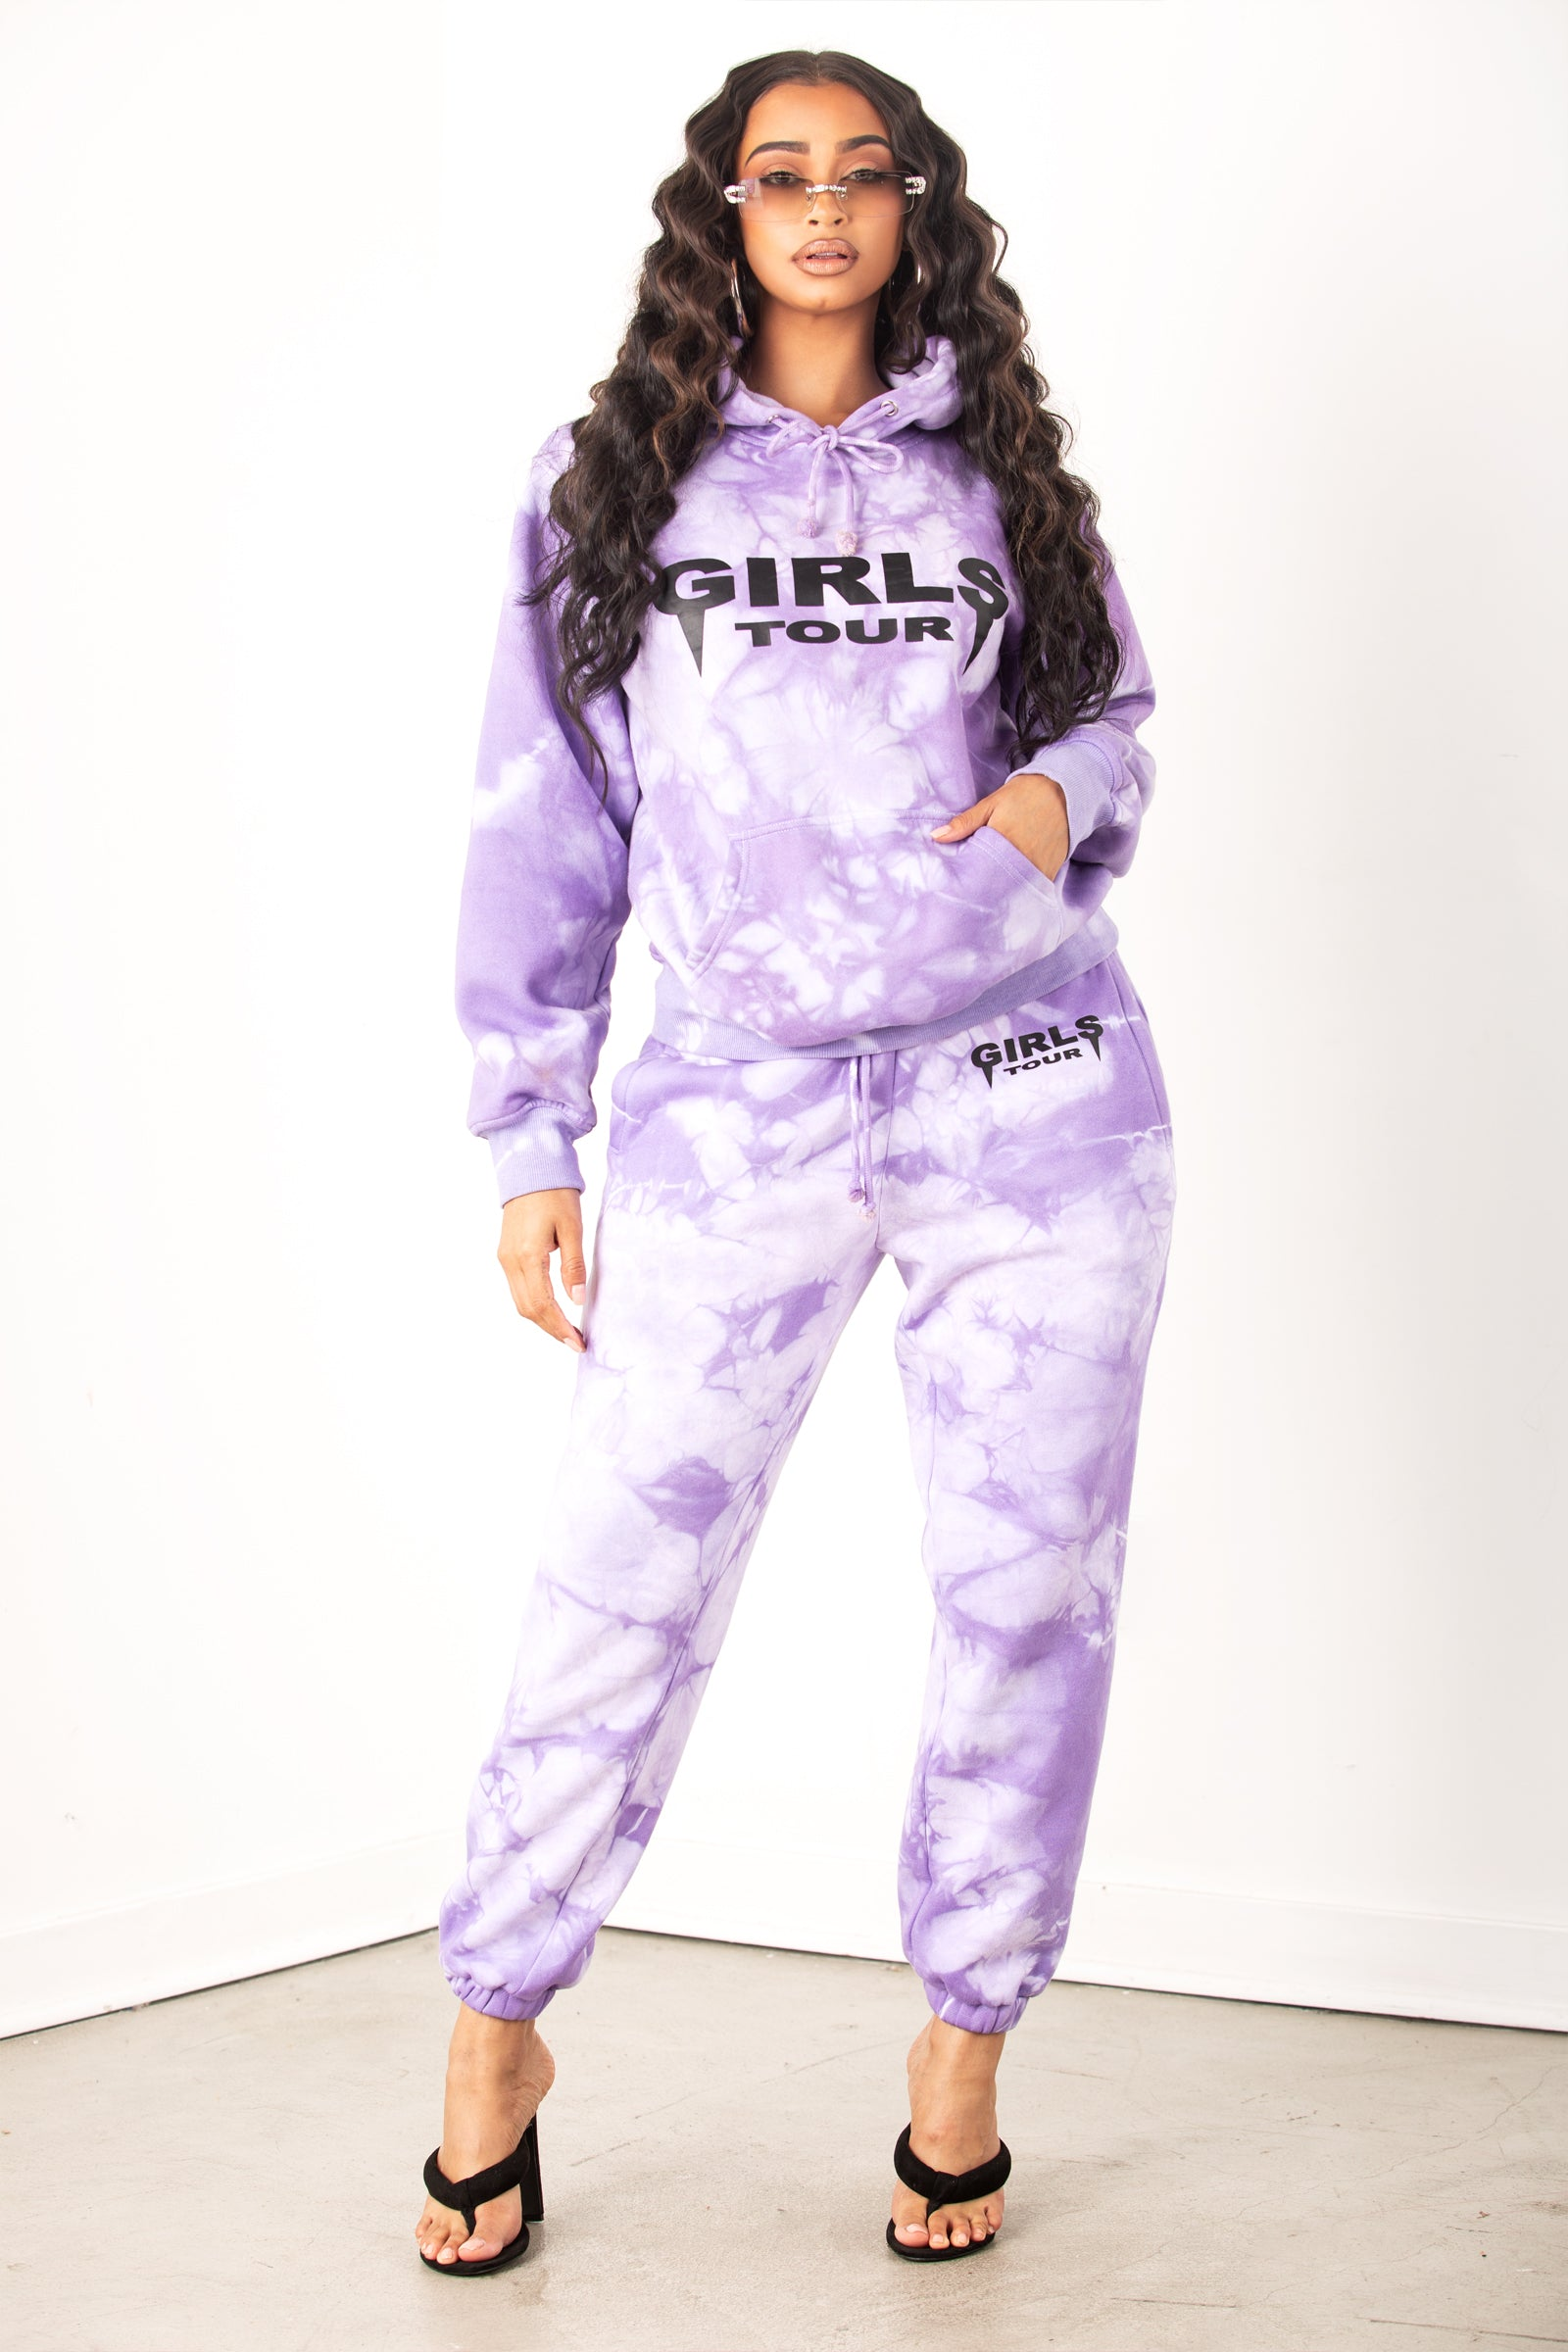 Og Girls Tour Purple Outline Sweatpants